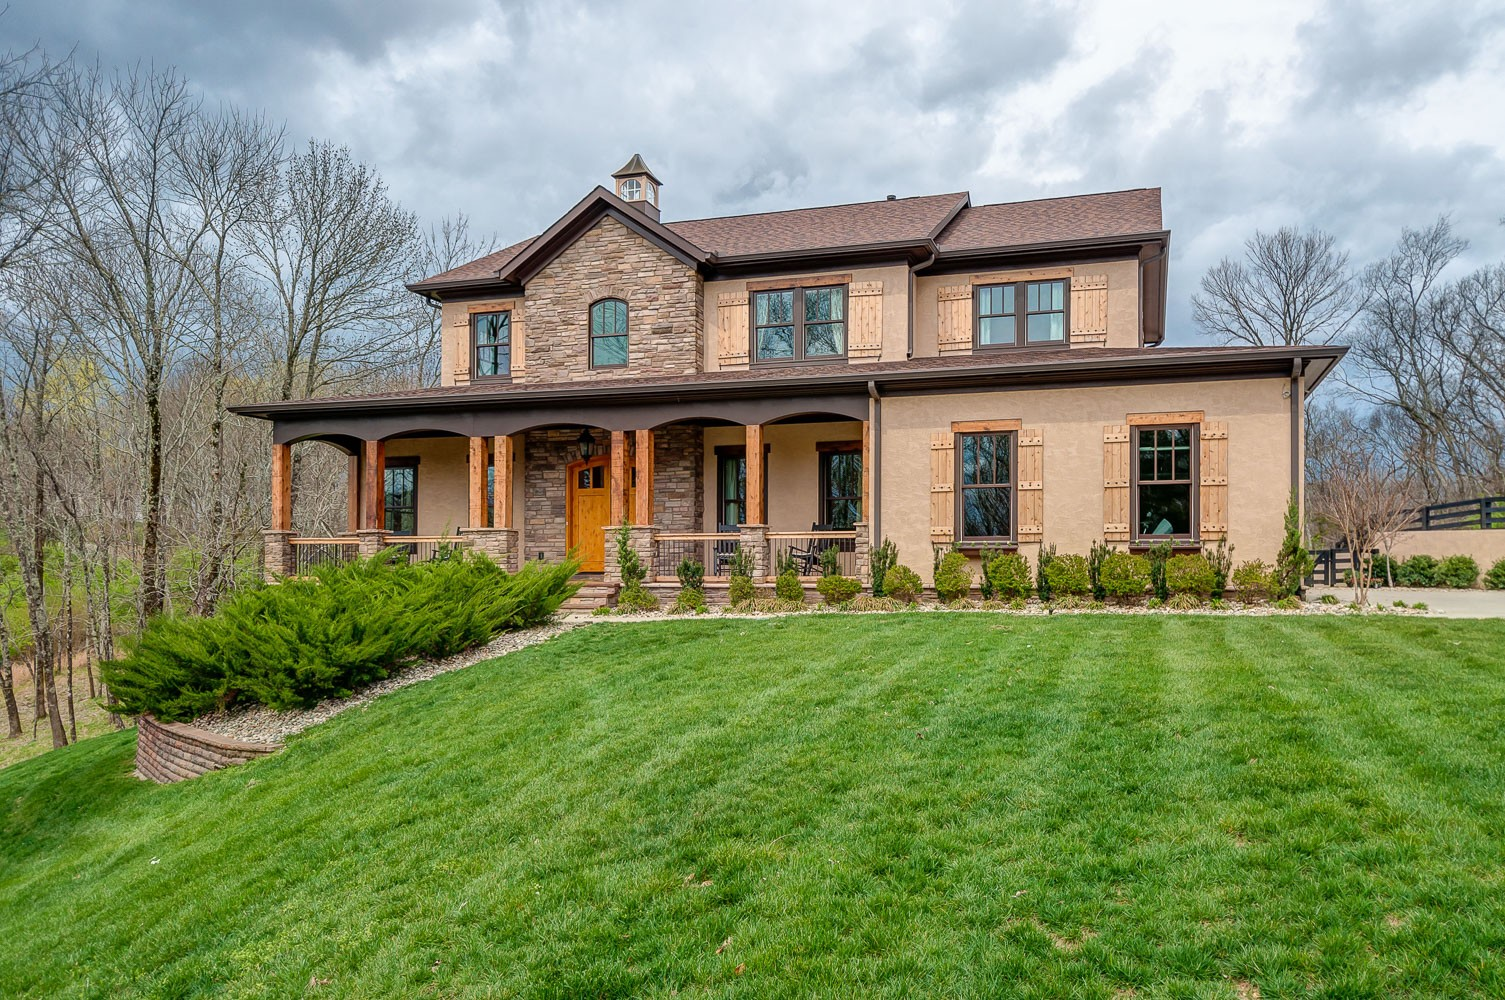 869 Windstone Blvd, Brentwood, TN 37027 - Brentwood, TN real estate listing